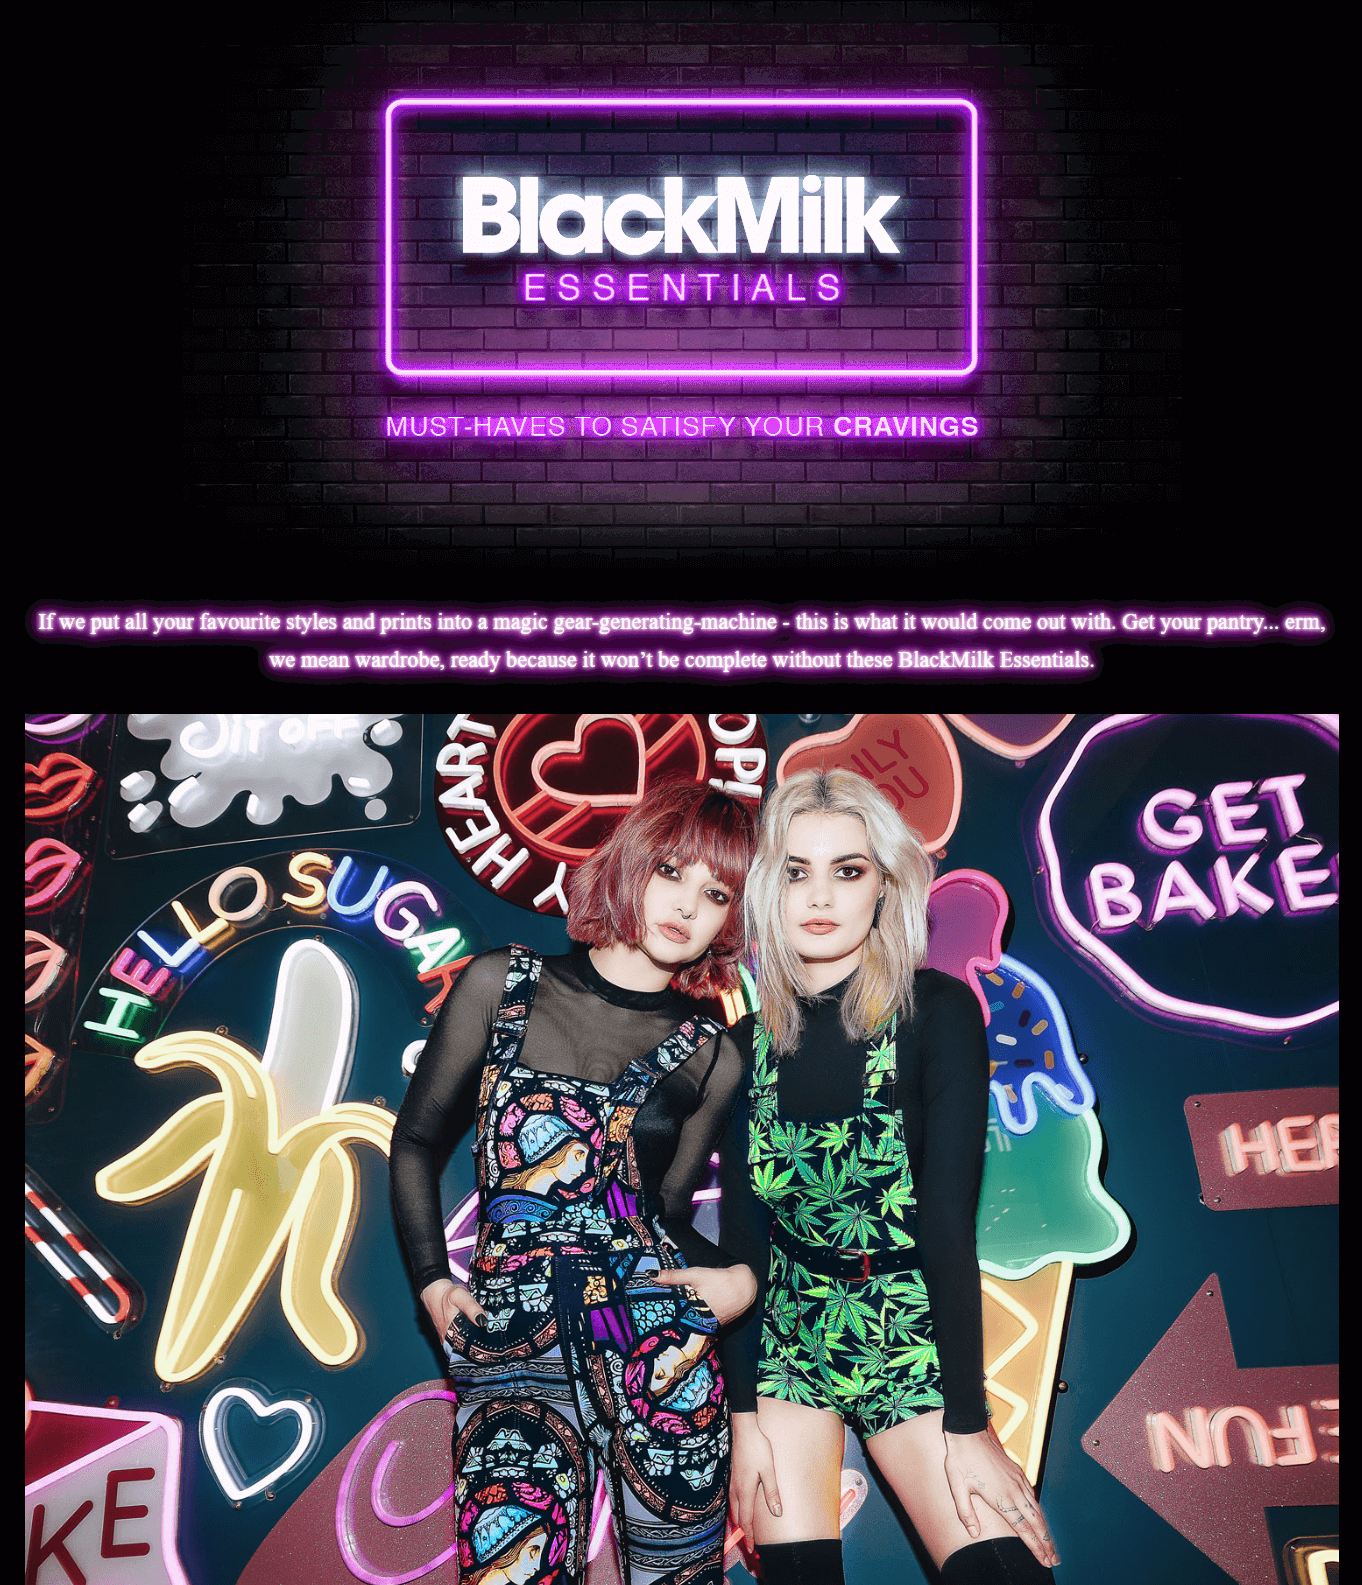 BlackMilk Clothing